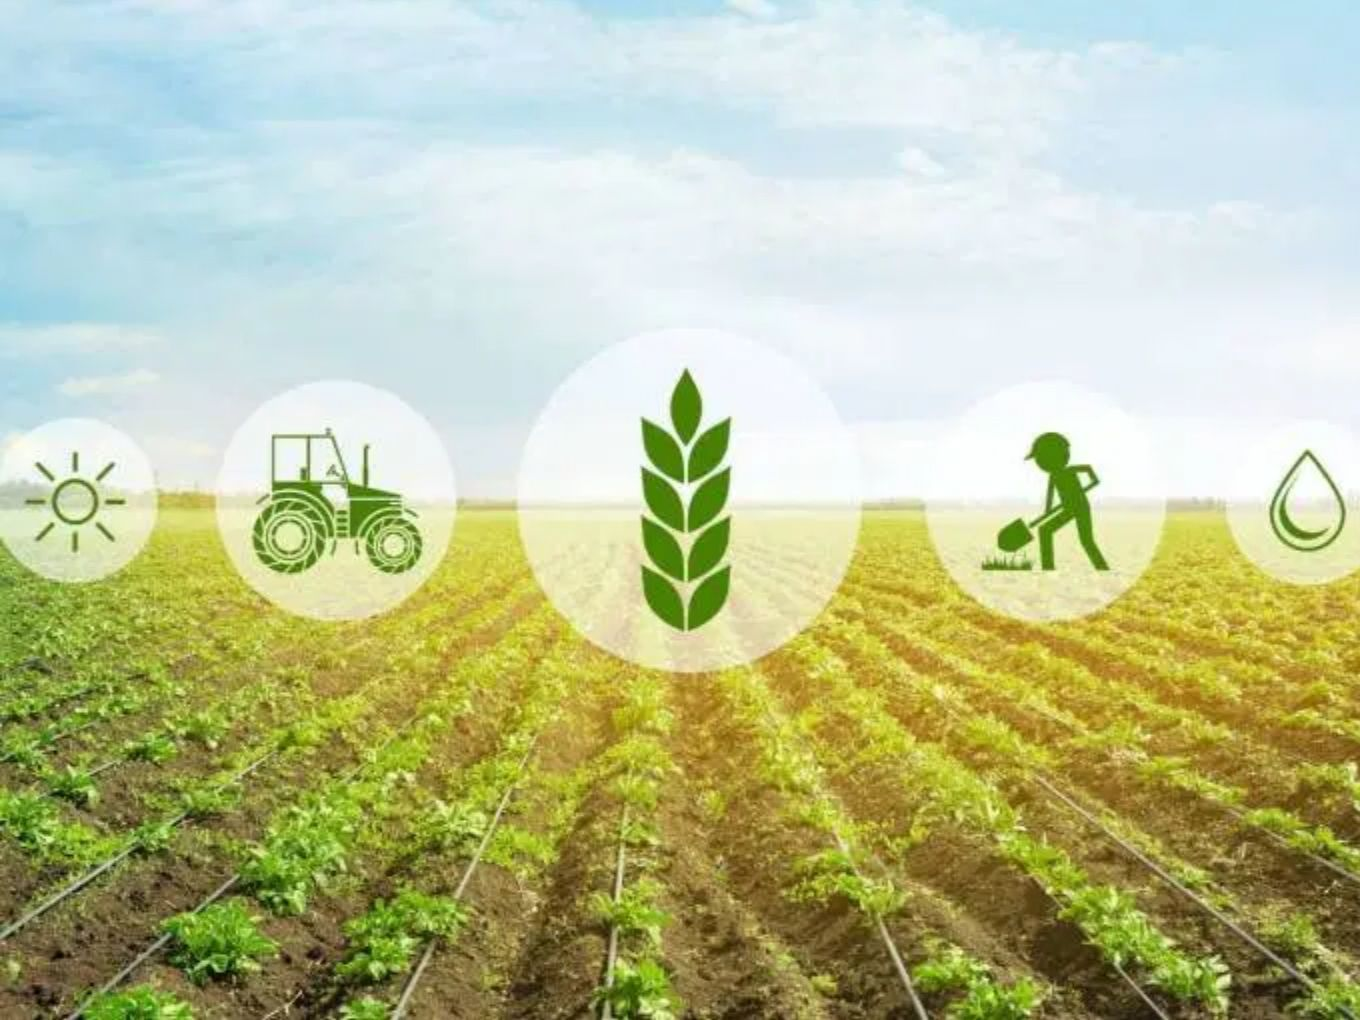 Agritech Startup Nu Genes Raises $6 Mn To Take Seed Business Global